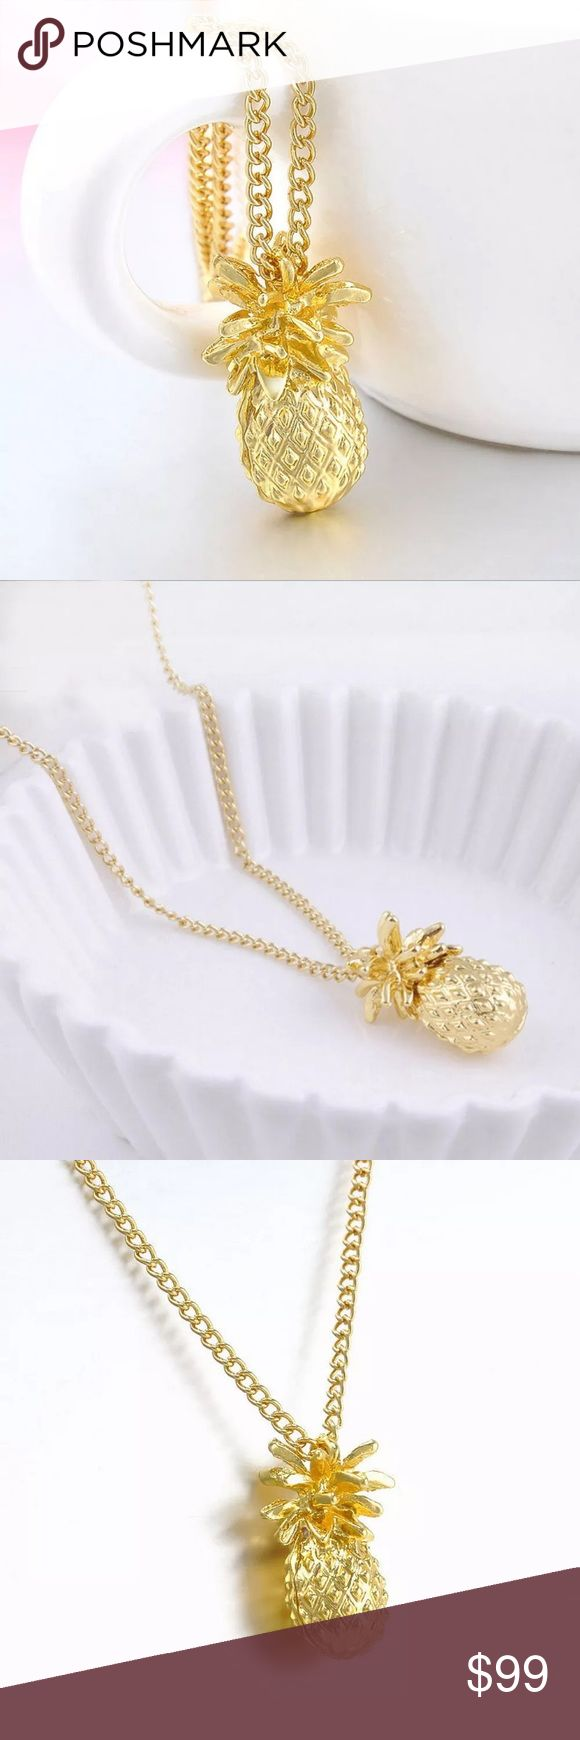 〽️Mon Ami Merci〽️Pineapple Chain Necklace Mon Ami Merci, brand new item, like this listing and will notify you when in stock. Price will be adjusted once the item arrives so no one can purchase until then. Merci Beaucoup!💋 Jewelry Necklaces